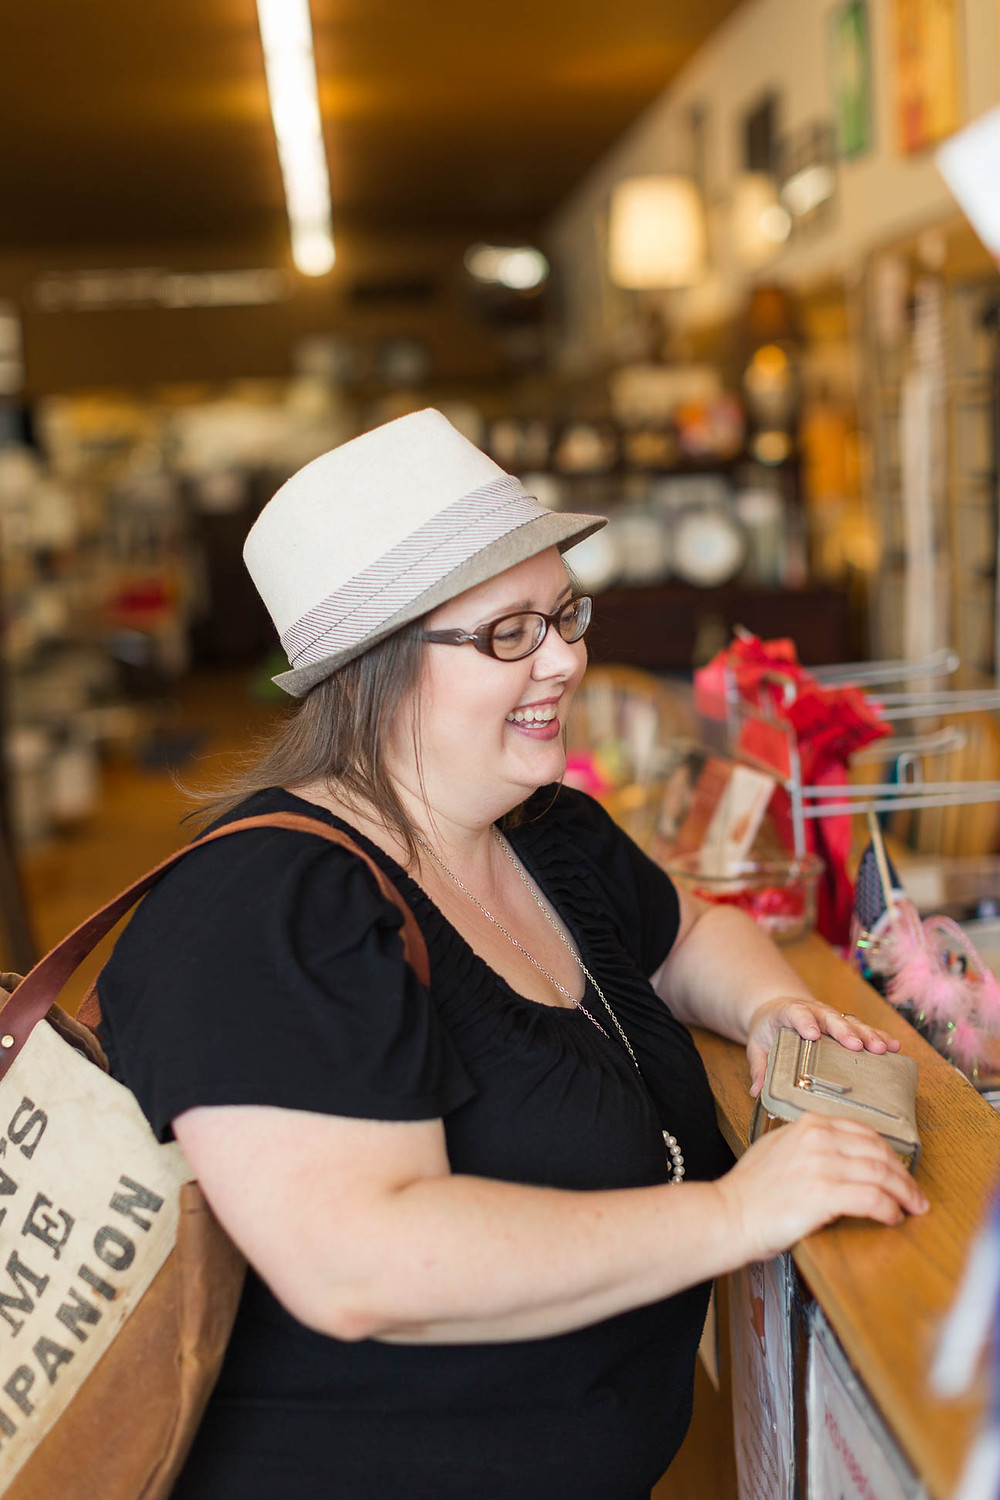 purchasing home goods at Greenville thrift store